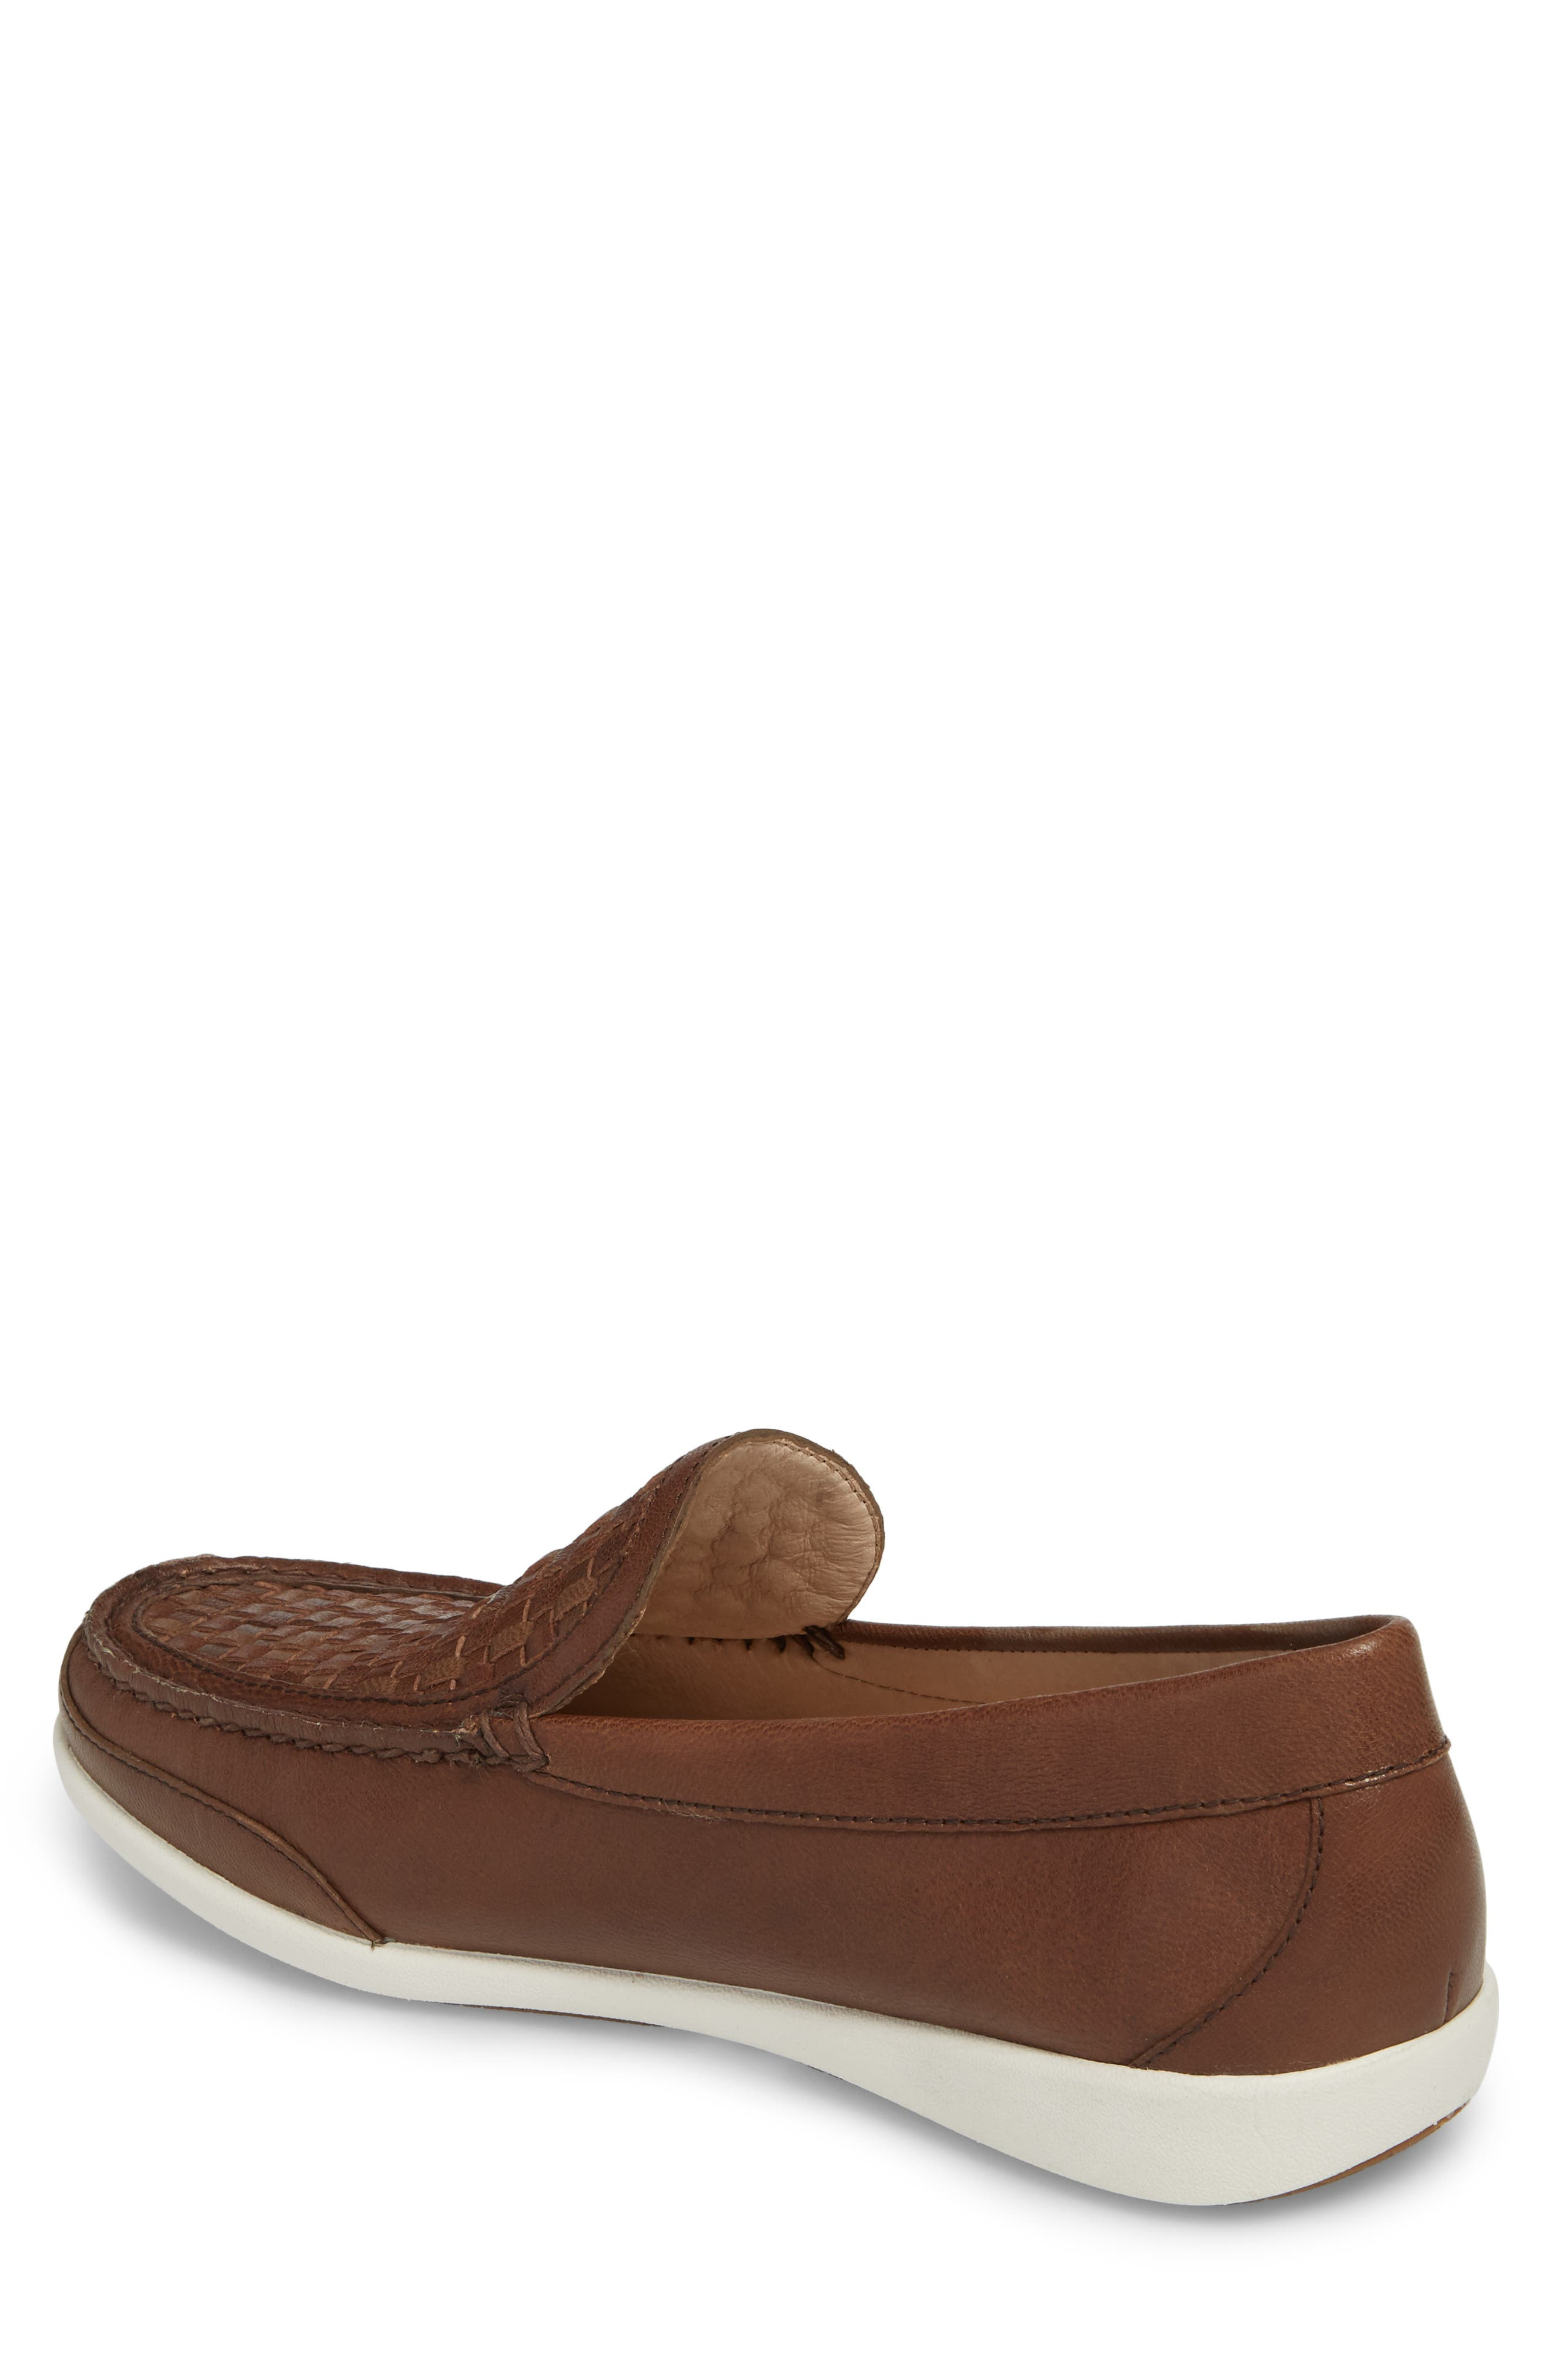 Taormina Woven Loafer,                             Alternate thumbnail 2, color,                             DARK BROWN LEATHER